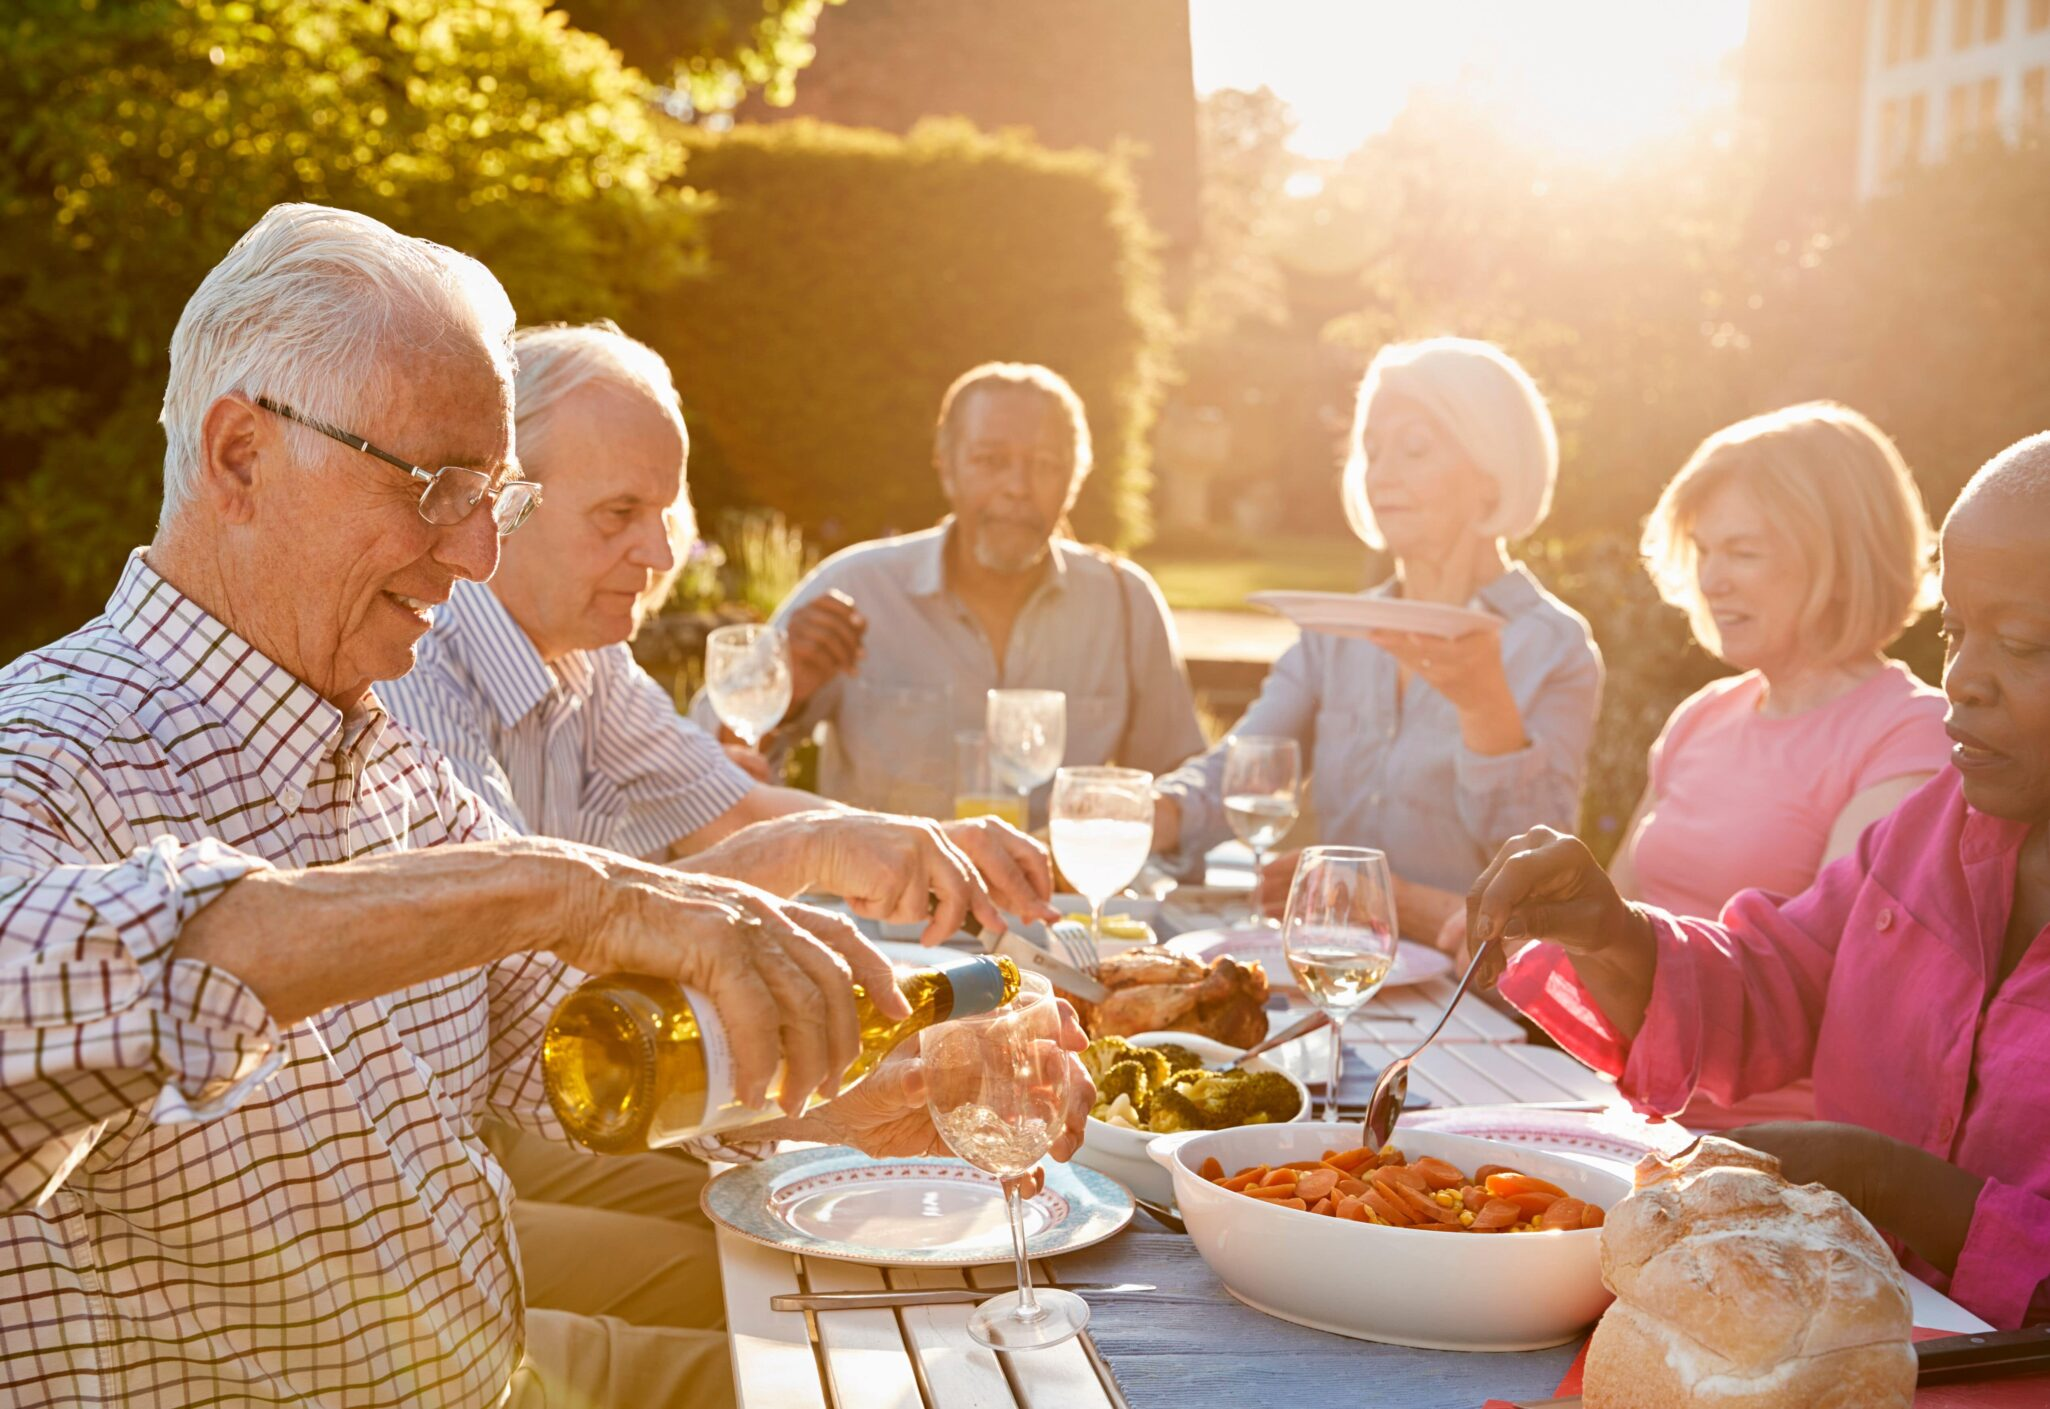 A group of seniors enjoy social wellness with a dinner outside together.